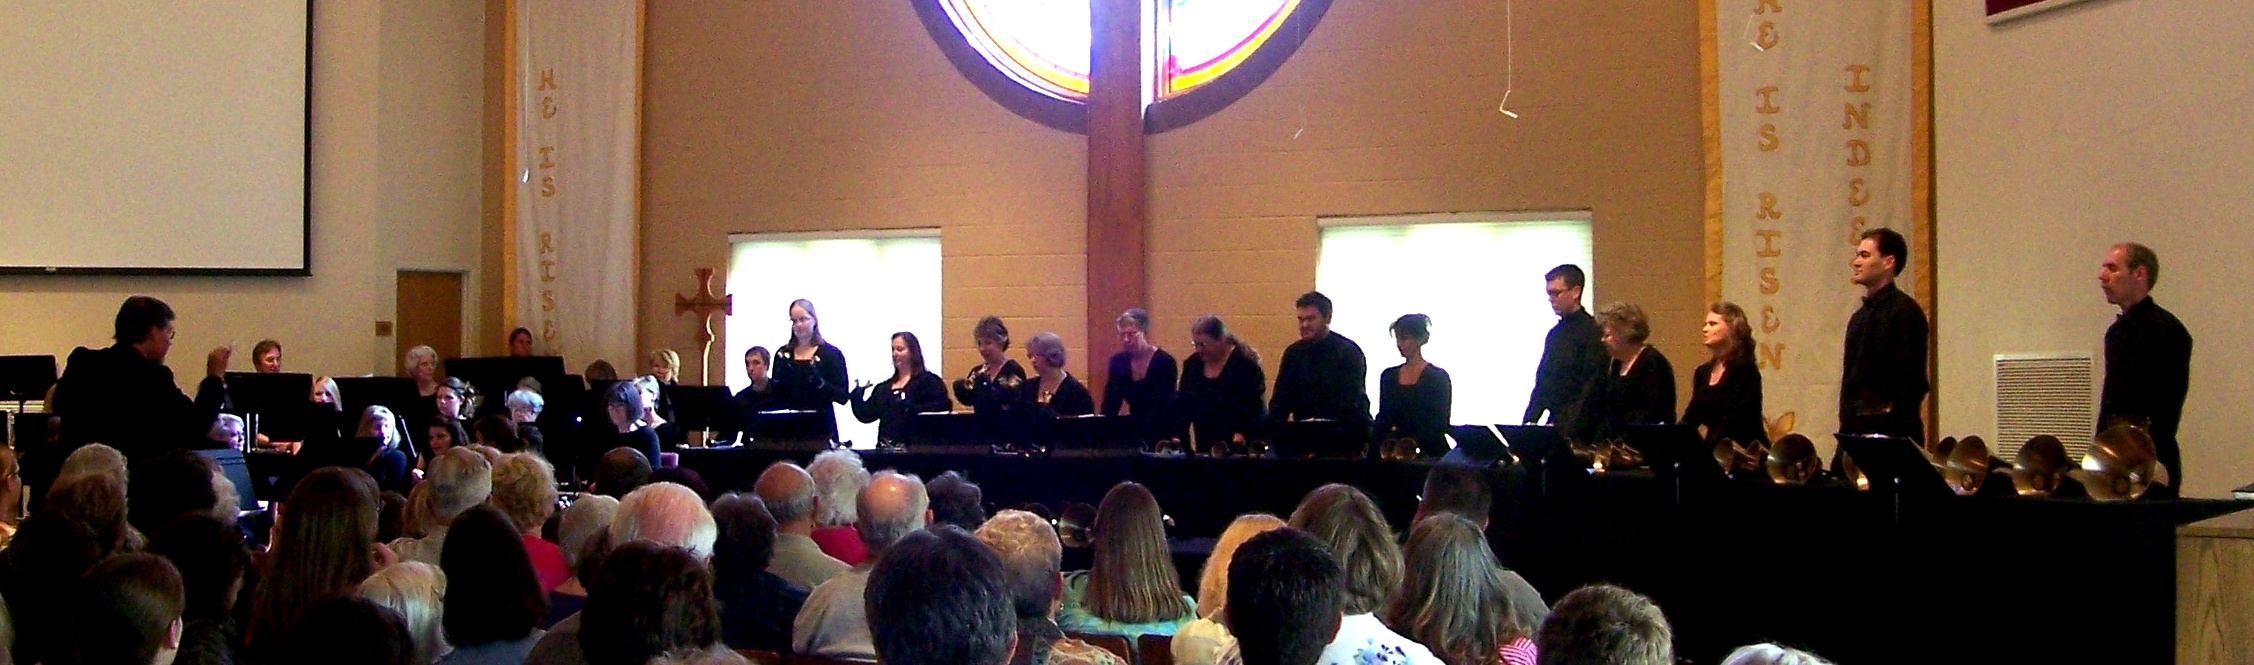 PPR performed with Pikes Peak Flute Choir on April 29, 3 p.m.